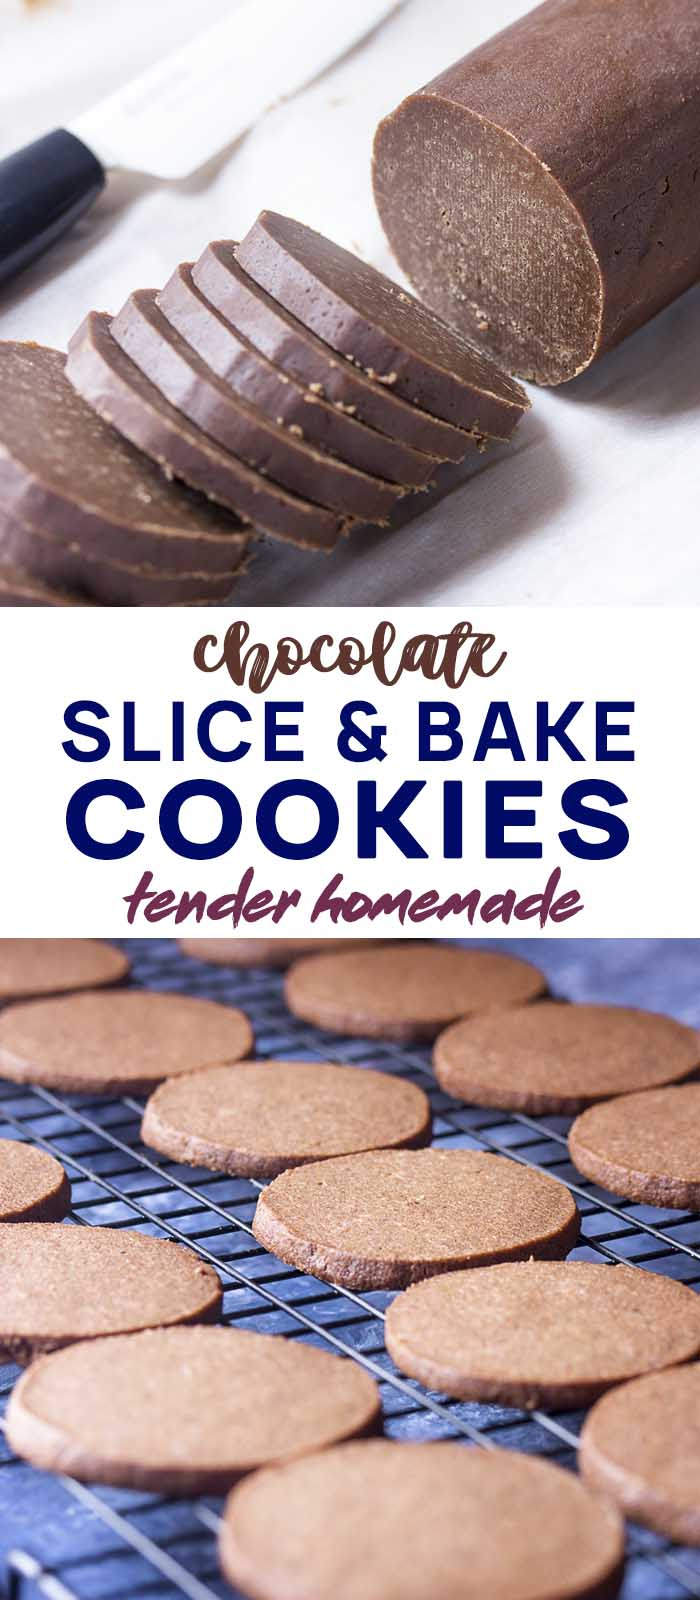 Log of sliced dough and baked cookies on a rack with text overlay - Slice and Bake Cookies.